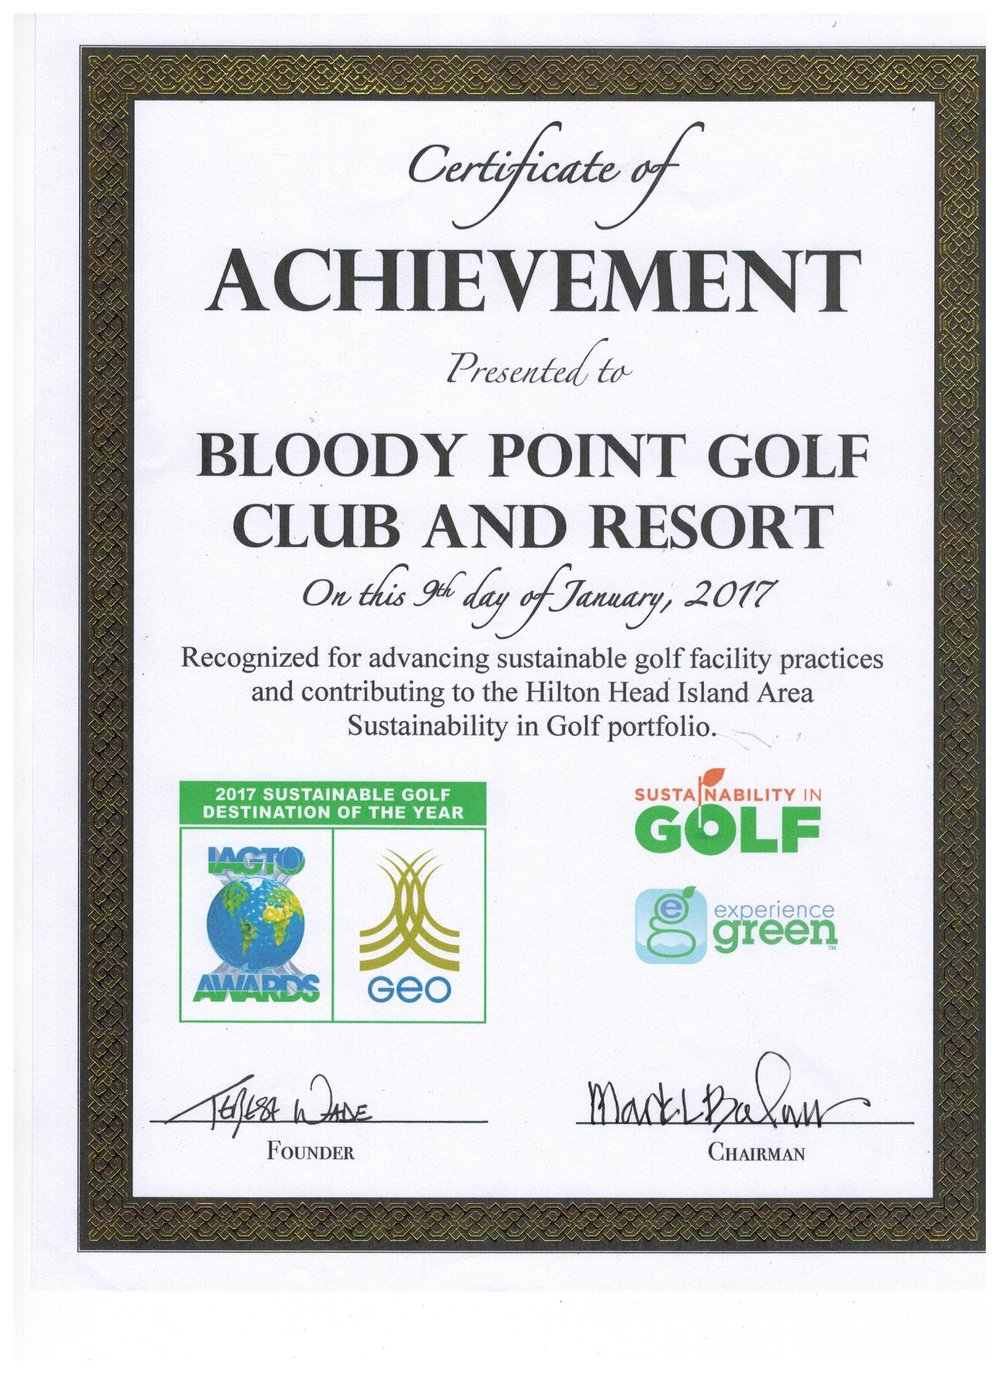 recognized by sustainability in golf & experience green for advancing sustainable golf course practices